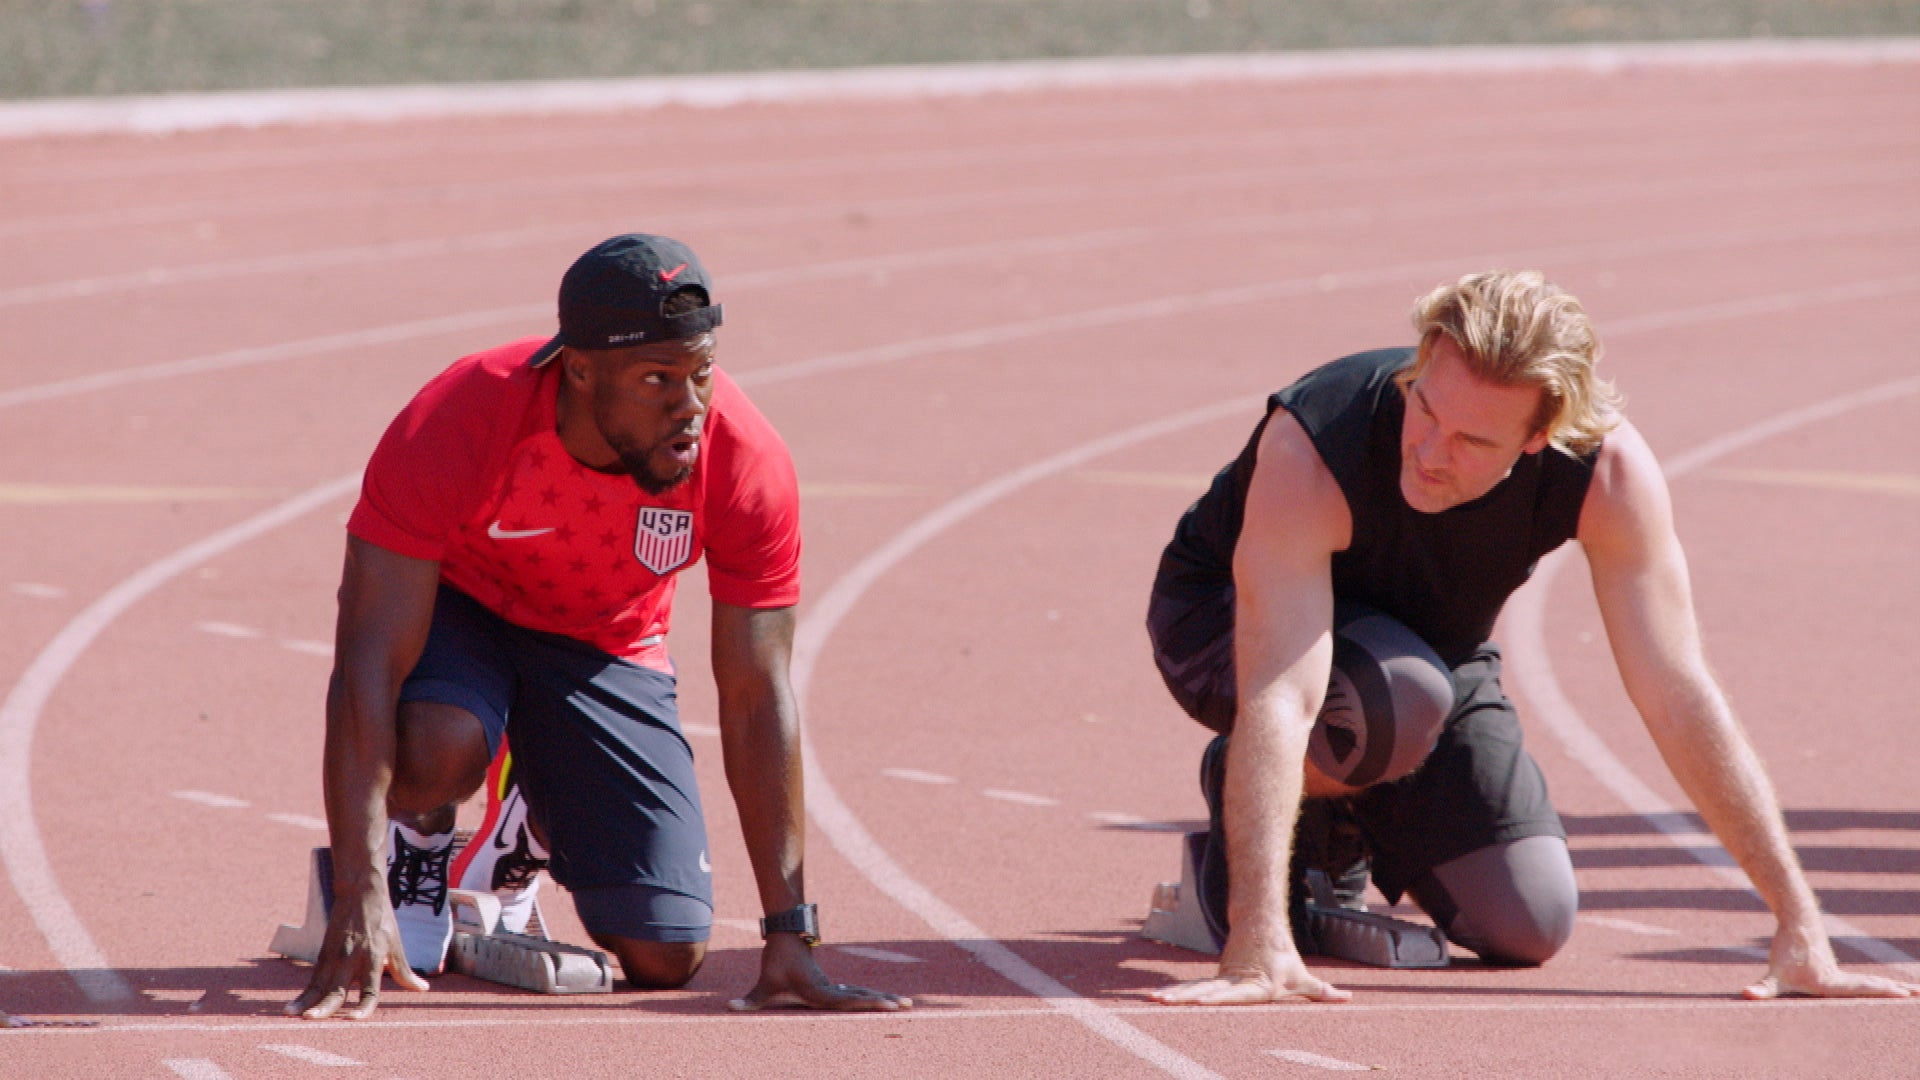 Kevin Hart And James Van Der Beek Attempt Grueling Track And Field Races Exclusive